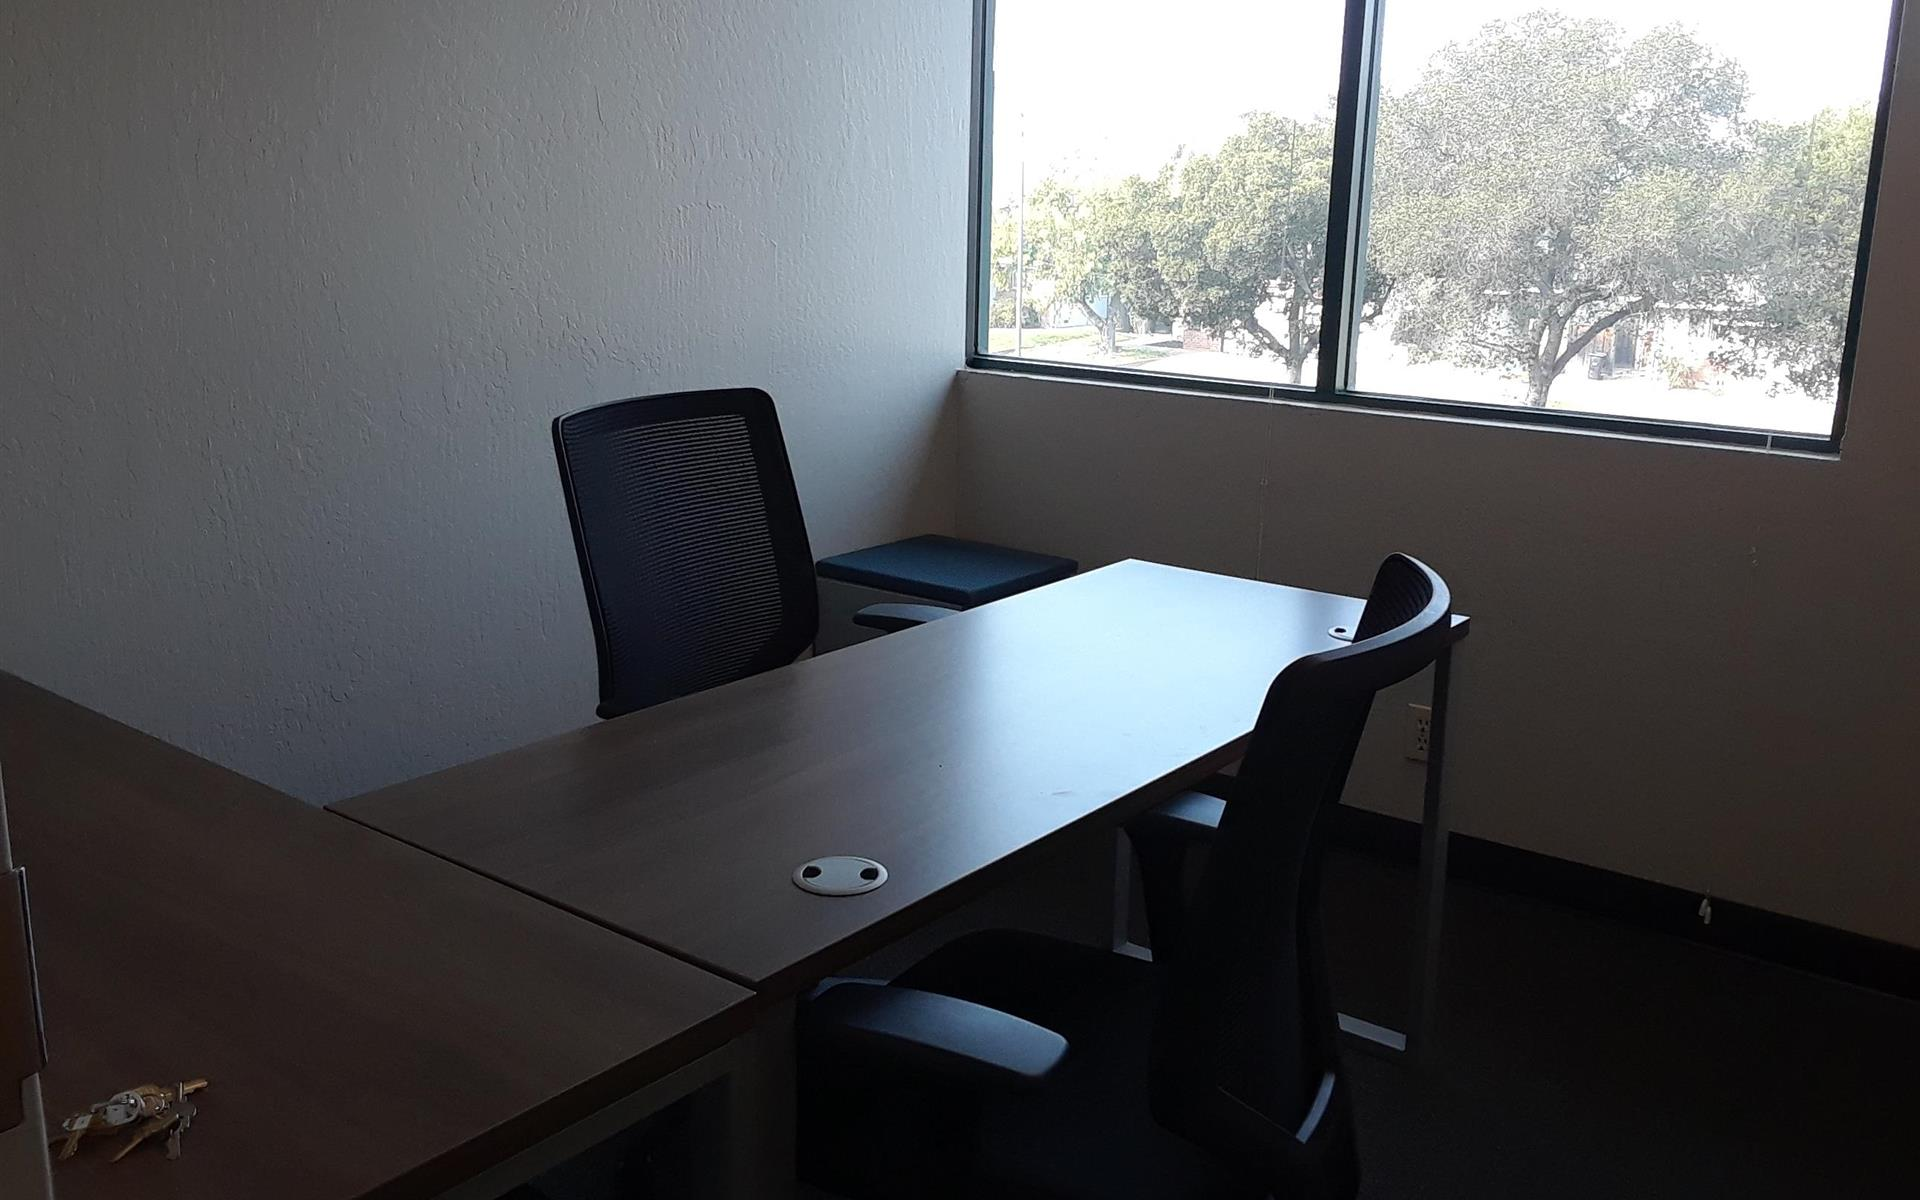 Silicon Valley Business Center - Private Office Room 205-4